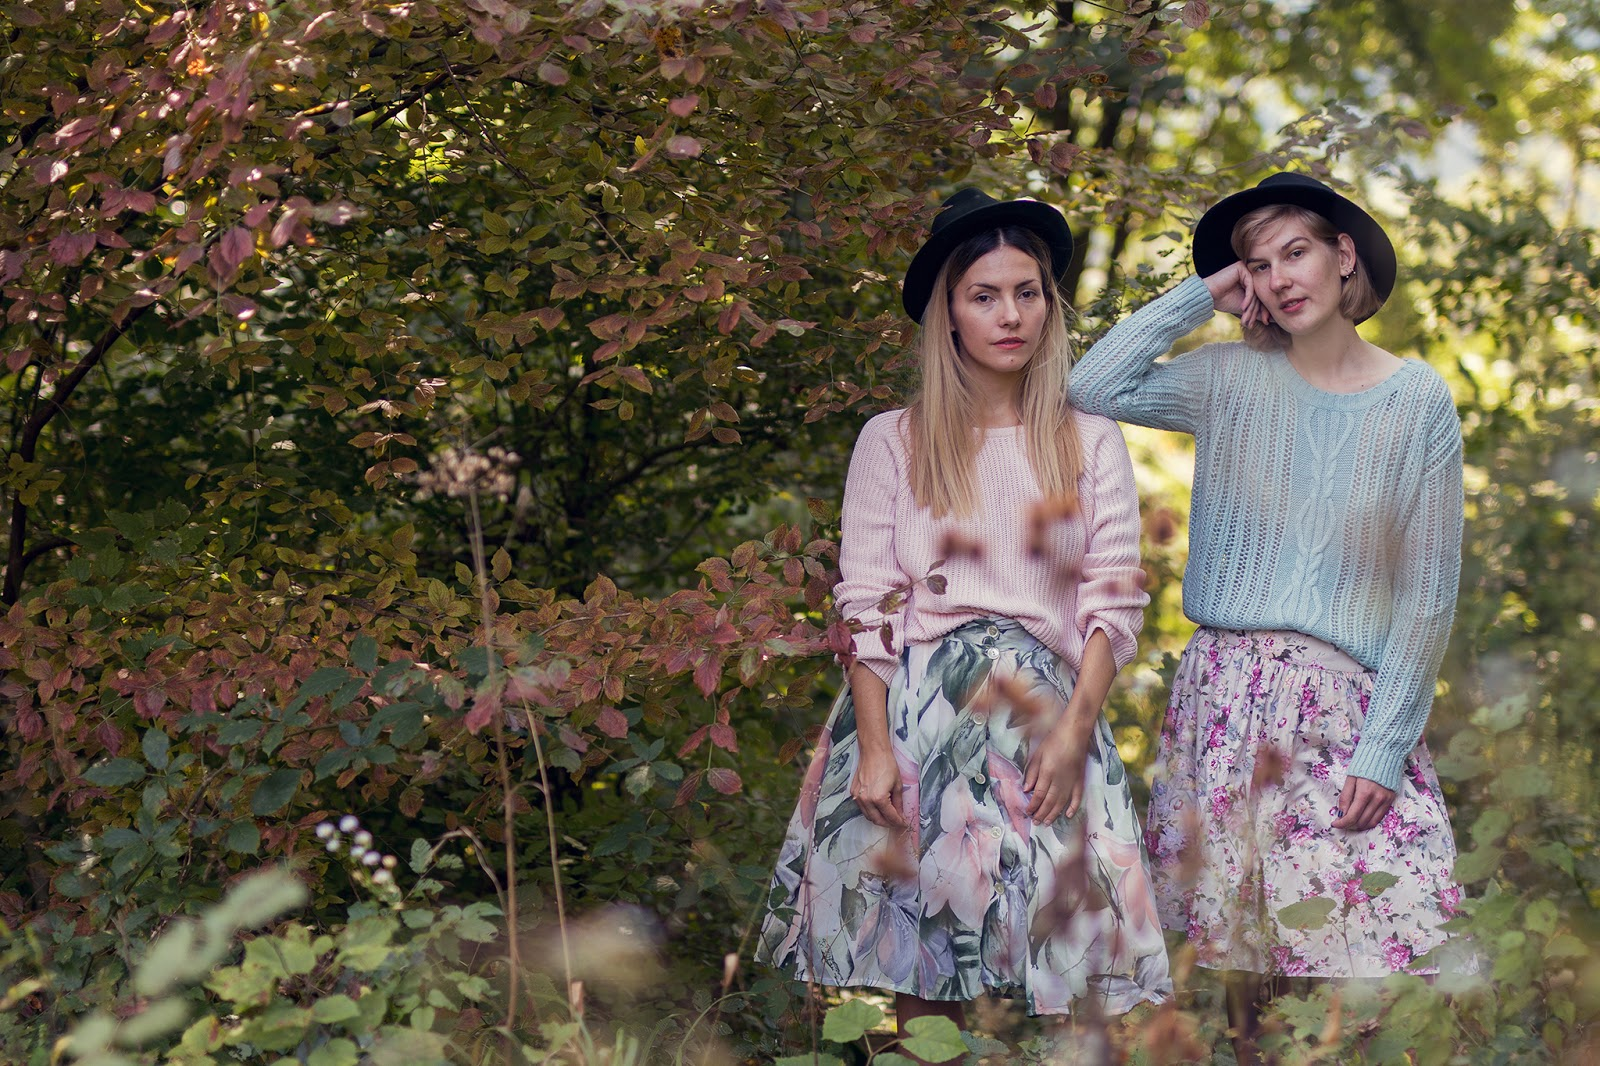 selma selimovic, filipa canic, youarethepoet, you are the poet blog, little barbie shop of horrors, horror barbies, haris rustemovic photography, fashion, Chloé - Color Palette, pastel,